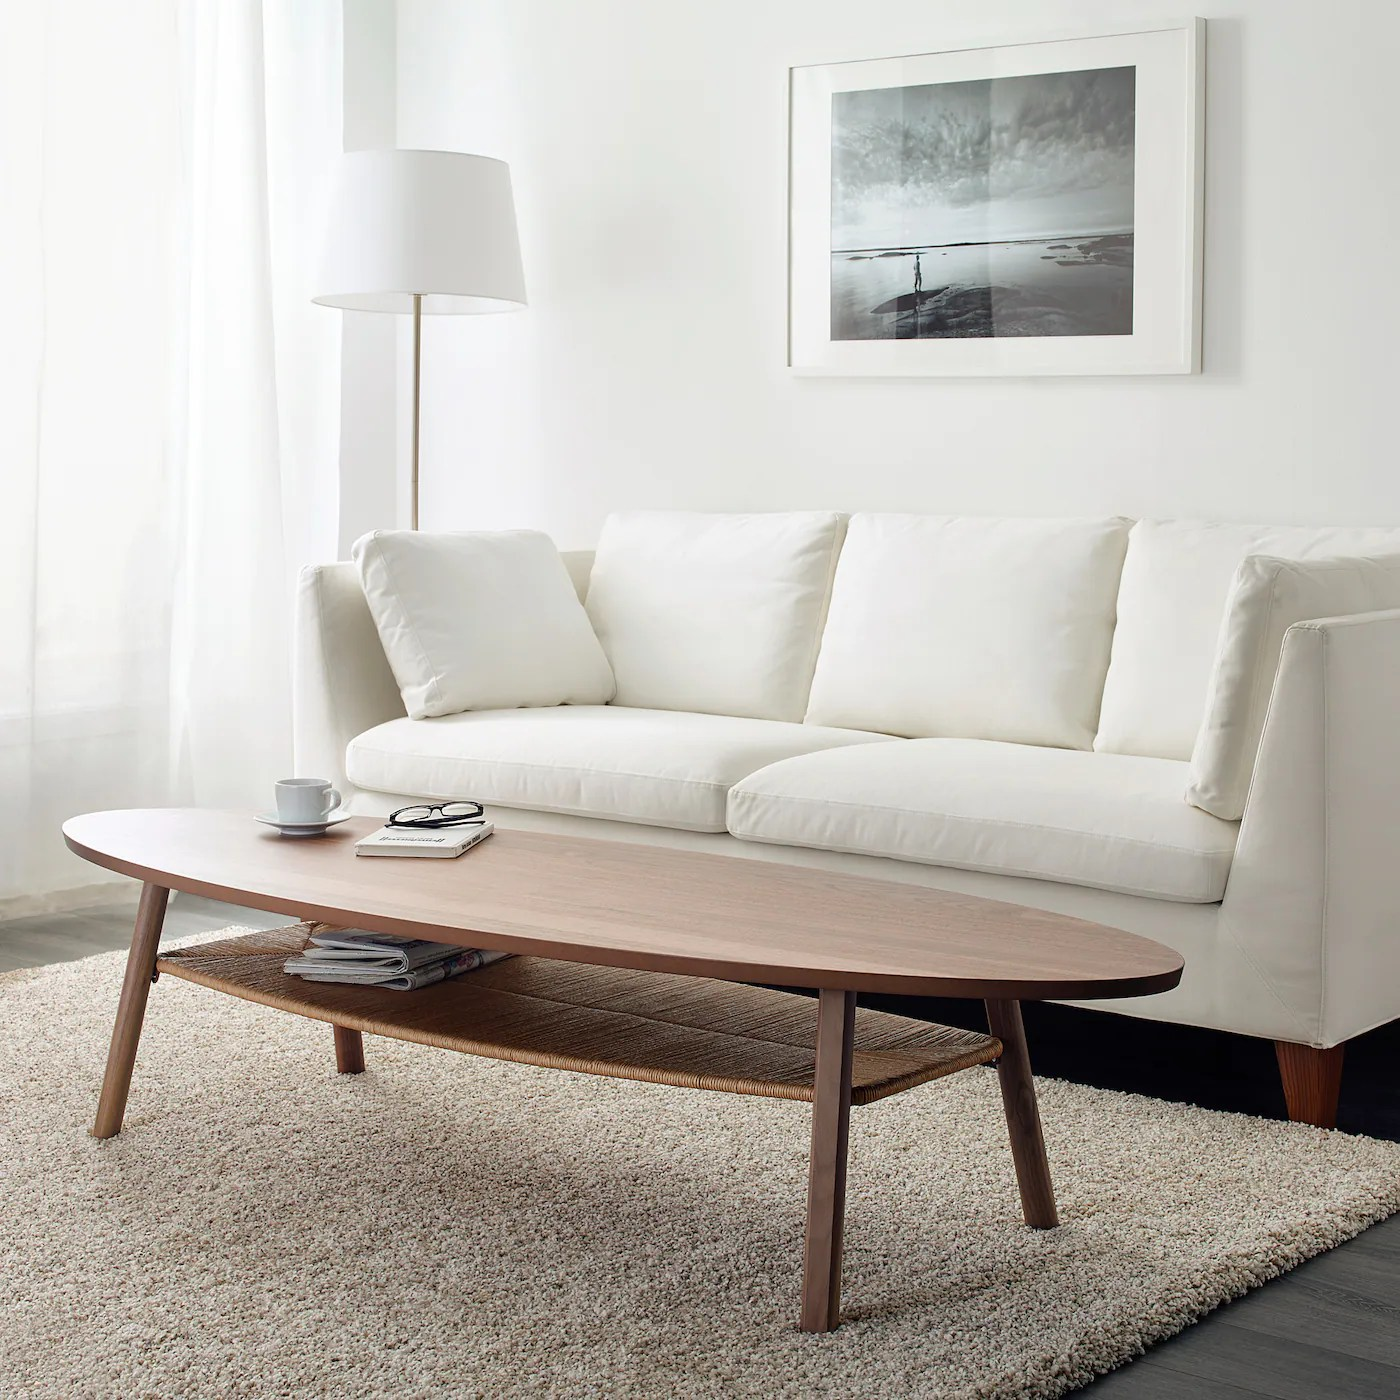 Ikea Stockholm Couchtisch Stockholm Coffee Table, Walnut Veneer, 180x59 Cm - Ikea Switzerland